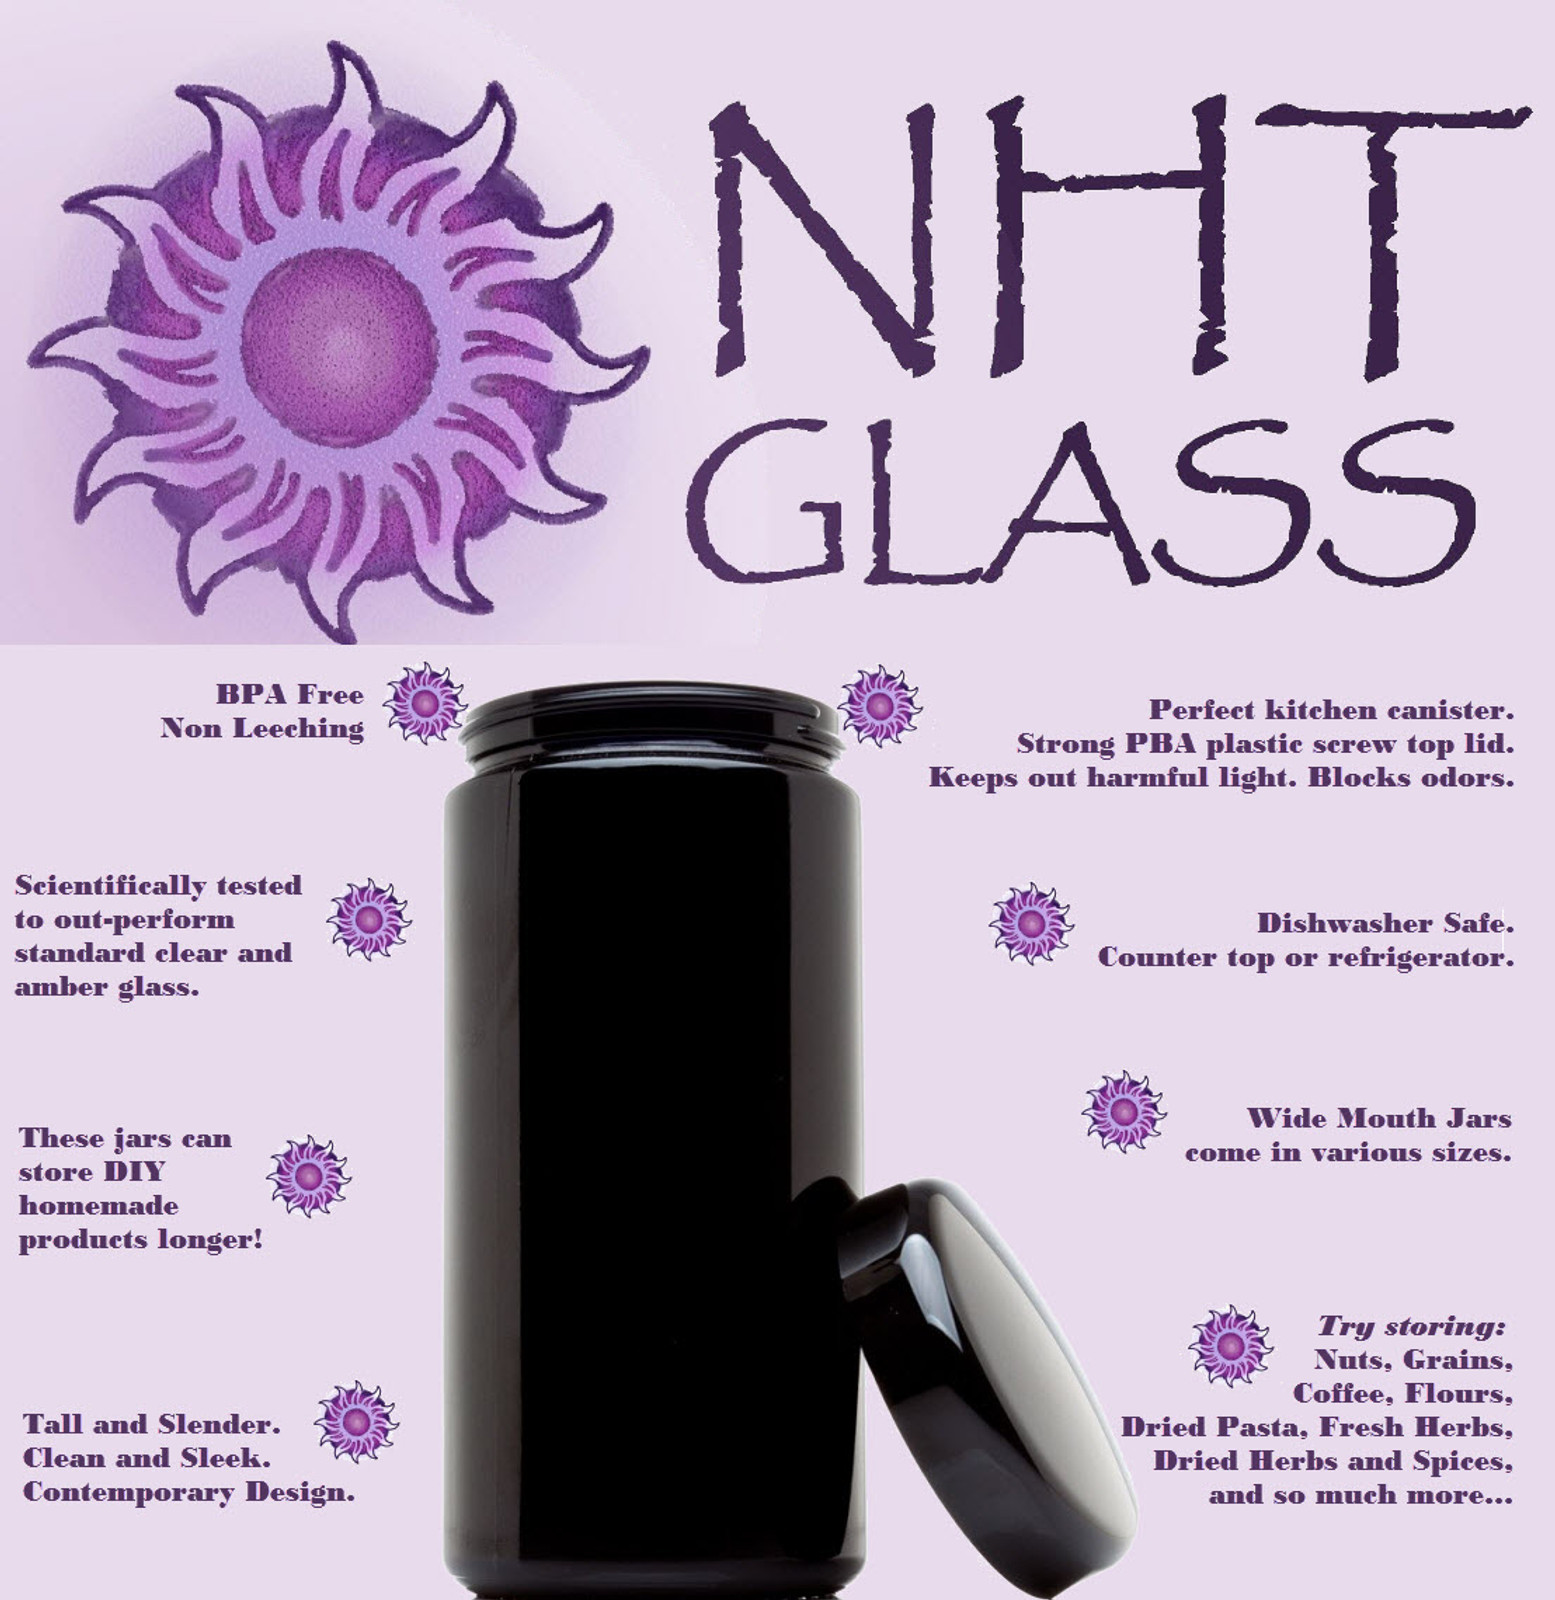 NHT Violet Glass Wide Mouth Jars are tall and slender version of our signature line of violet glass. Slides easily into the front of backpacks, center consoles of cars, desk drawers, counter top, and any cabinets and drawers of your kitchen, bathroom, or around the house. Store medications, super foods, dried, fresh or powdered products.